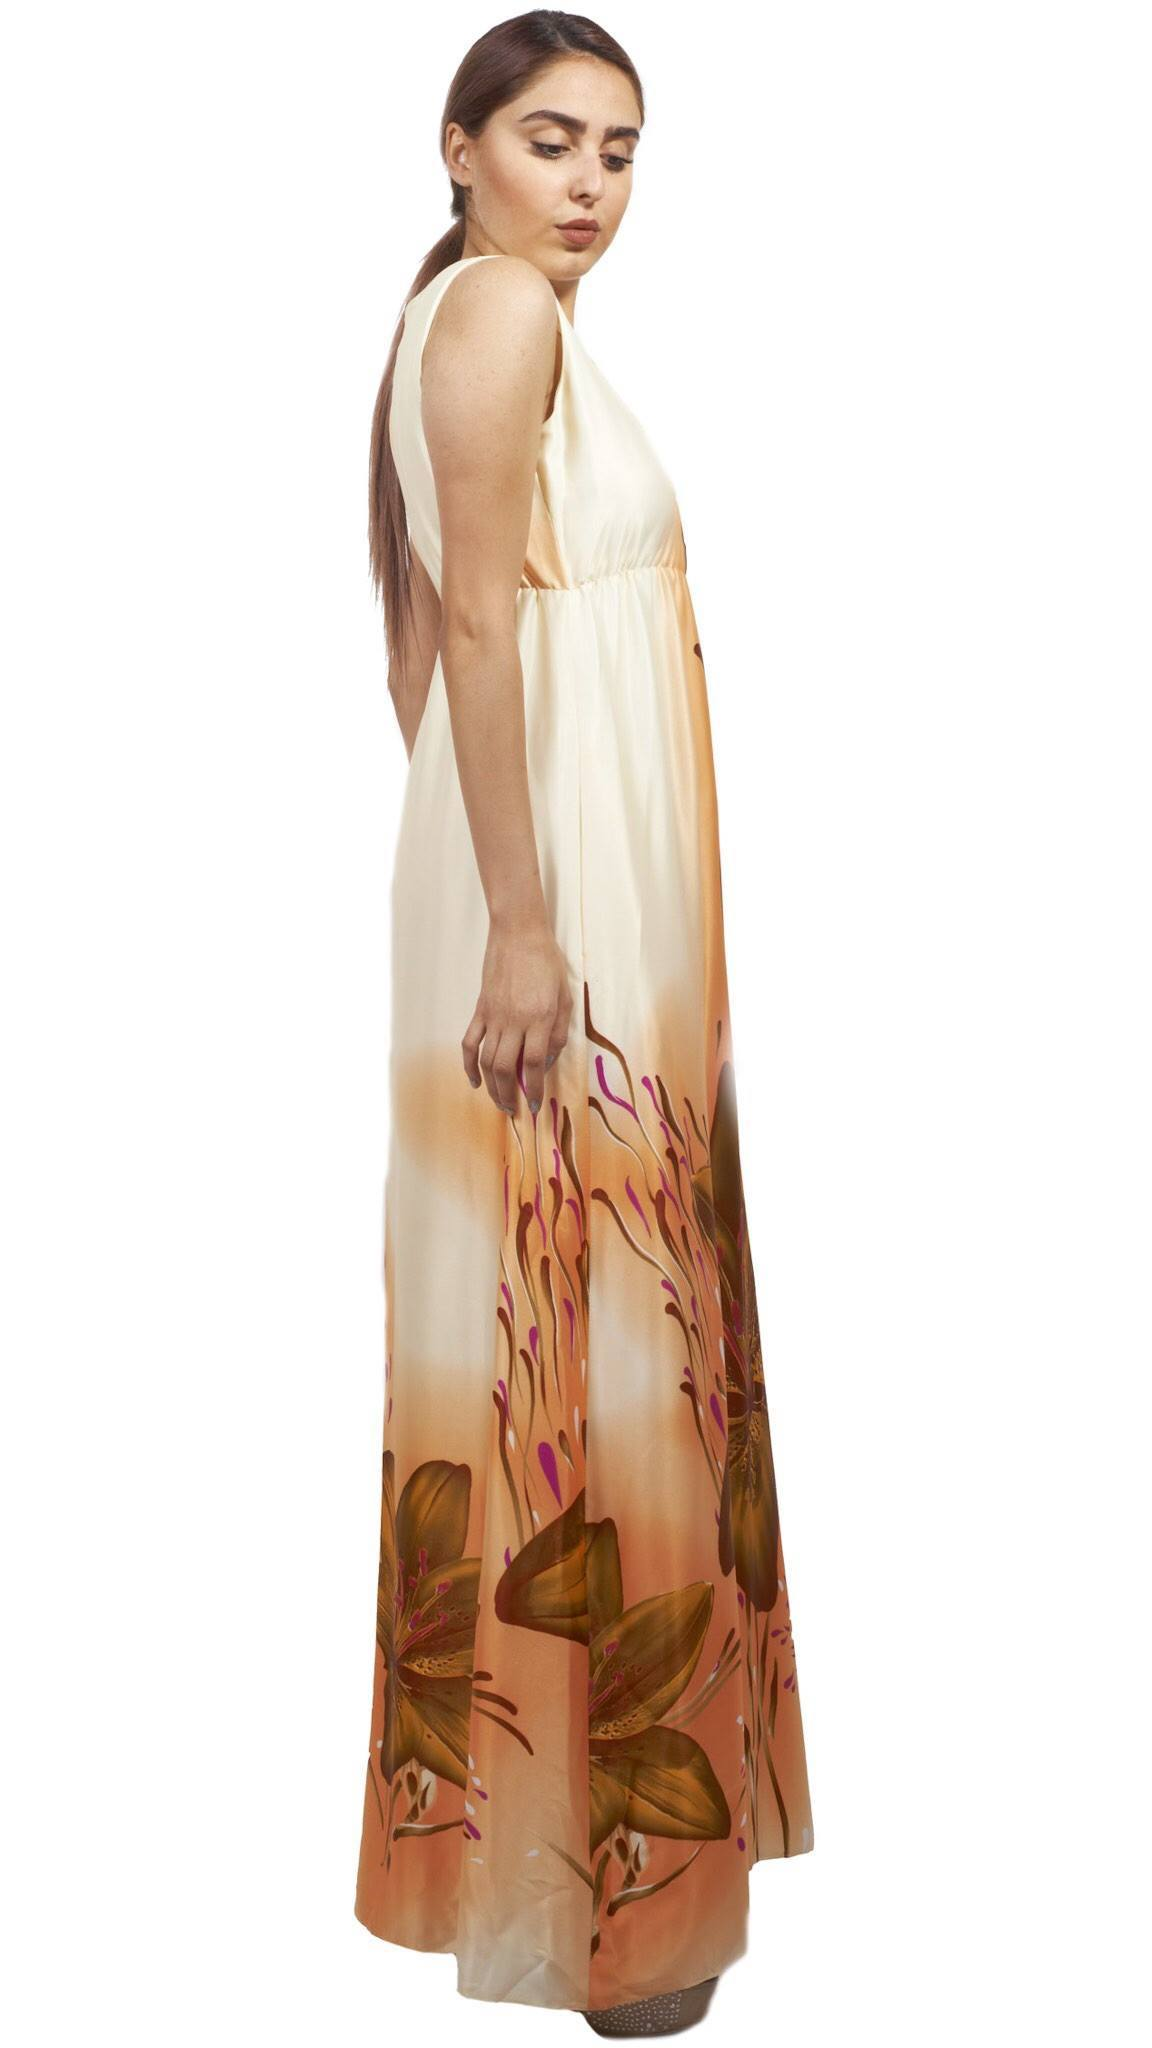 Shehna hussain Dress Peach Flower Dress